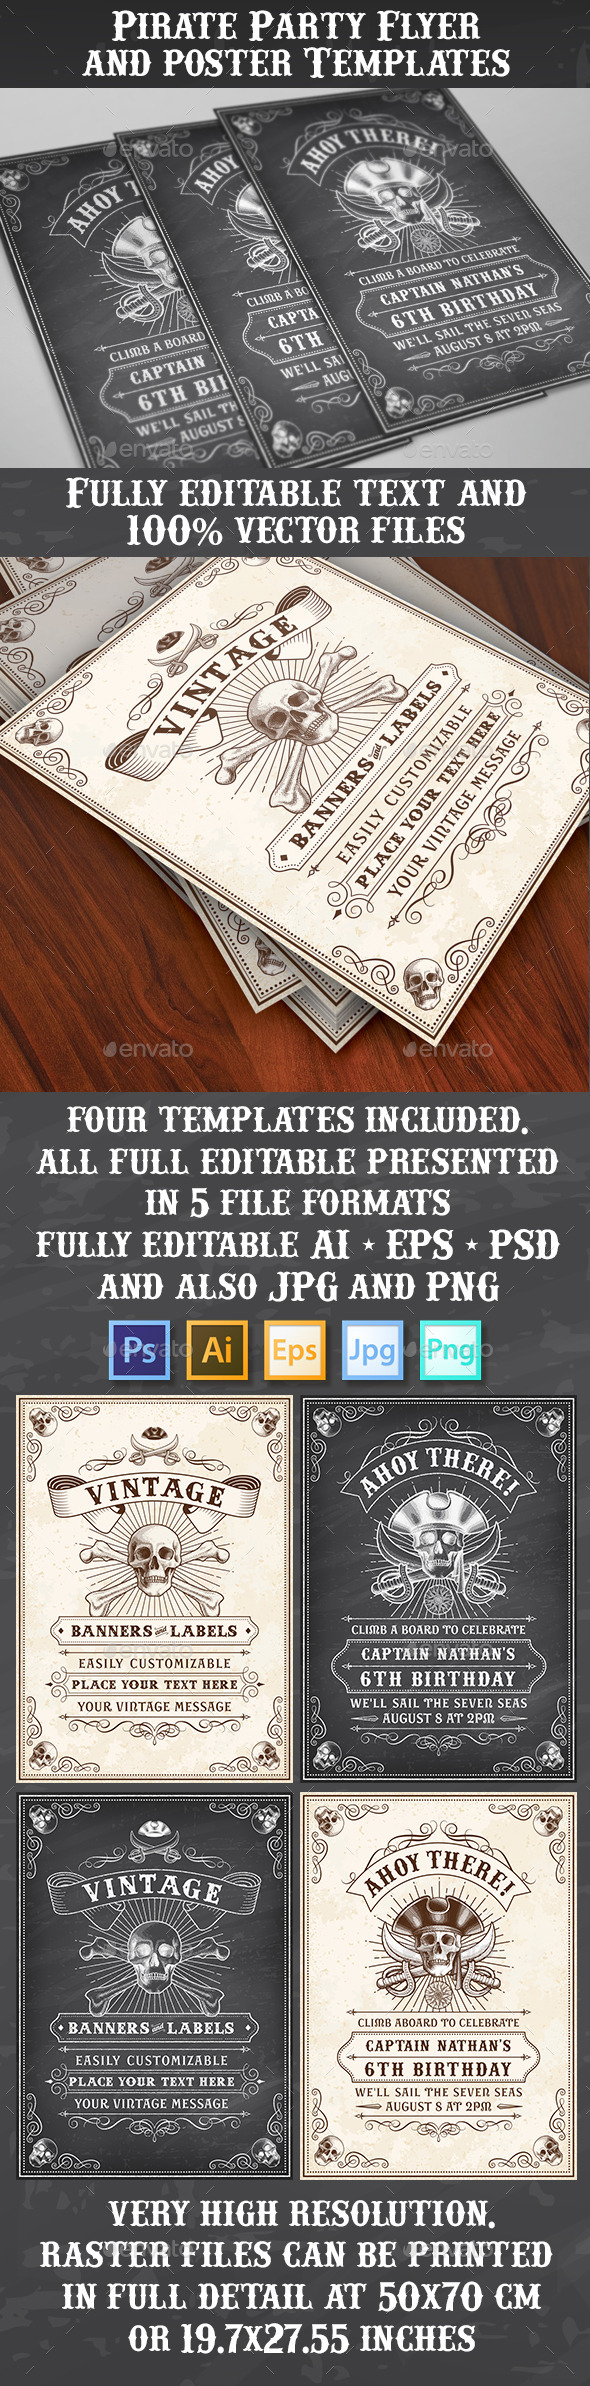 Pirate Theme Vector Flyers or Posters